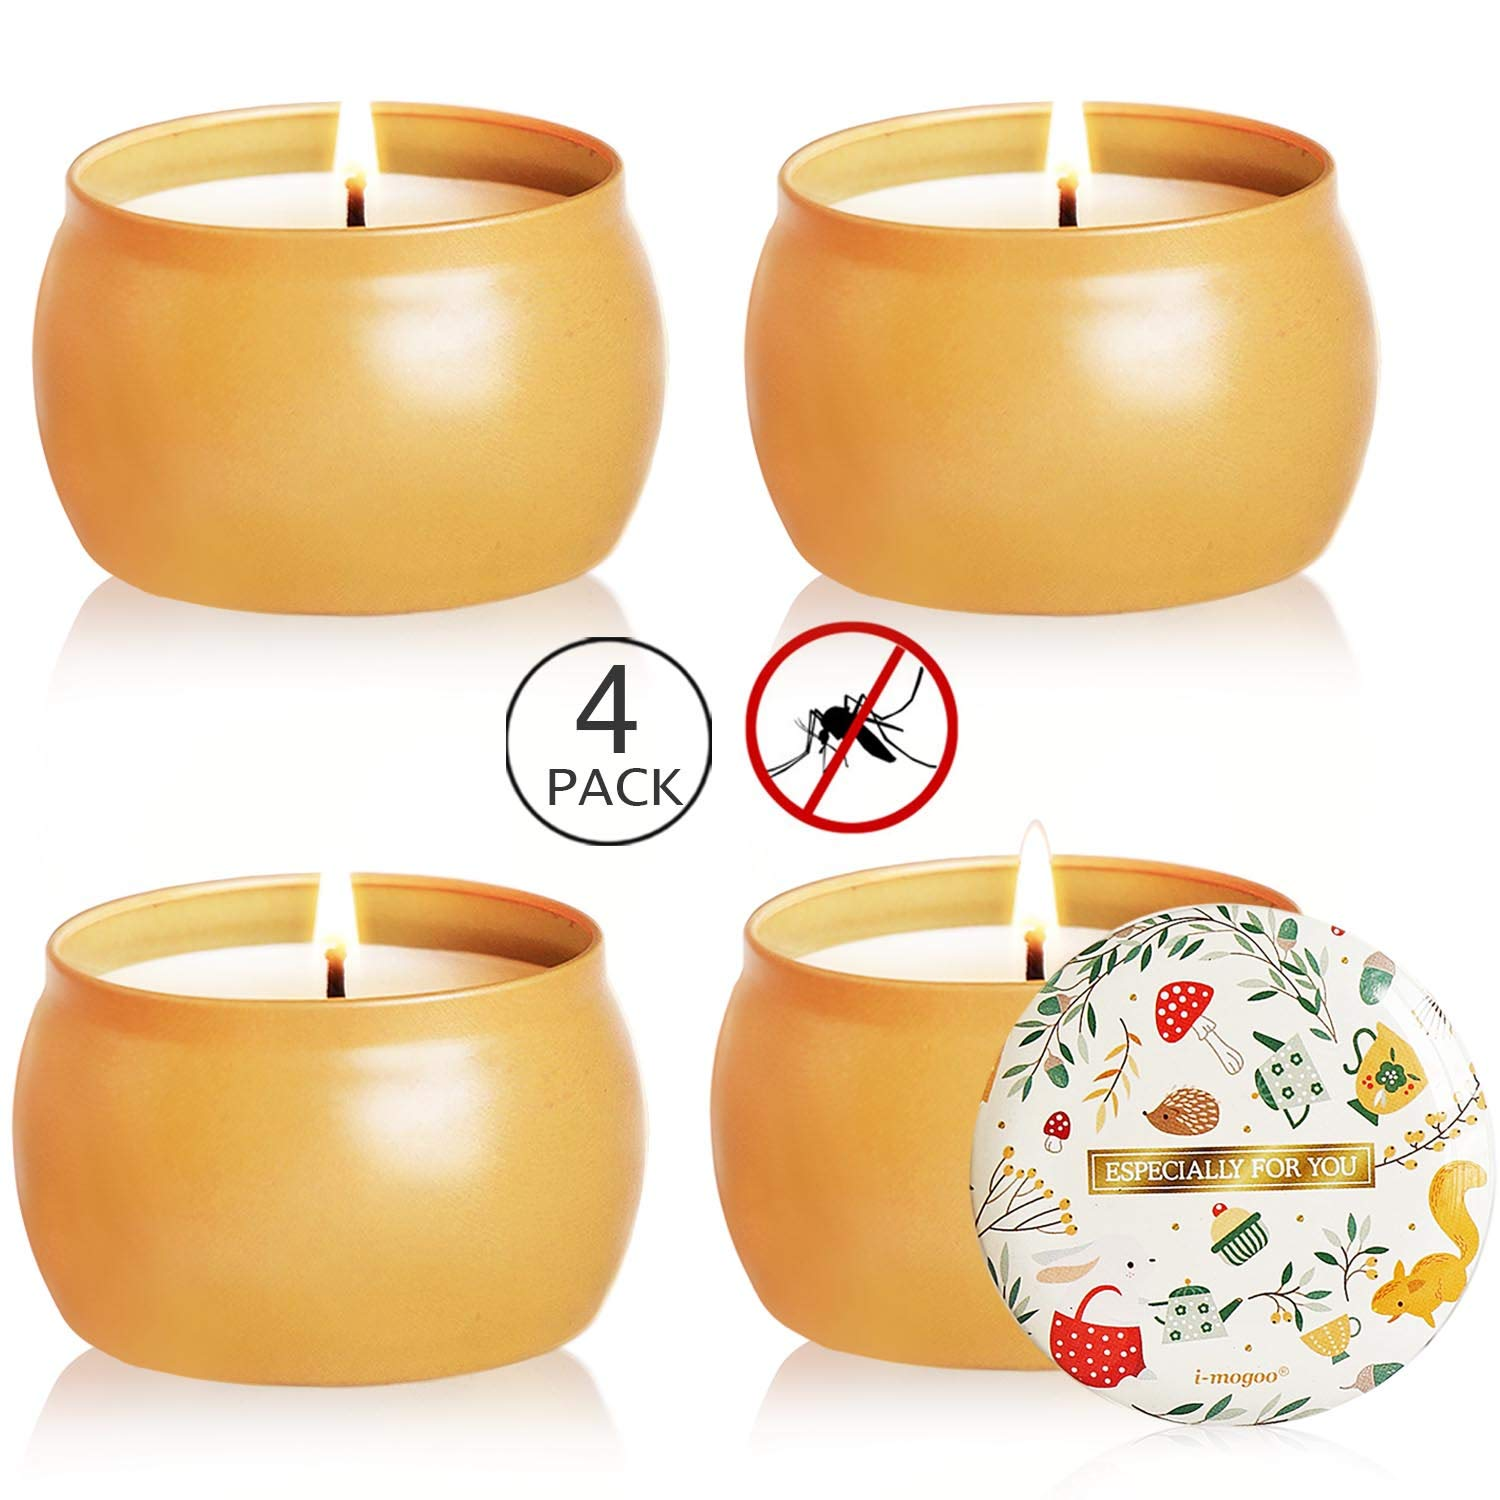 Howemon Citronella Candles Outdoor and Indoor, 4.8oz Scented Candles Pure Soy Wax Portable Travel Tin Candle for Stress Relief, 4-Pack Gift Set